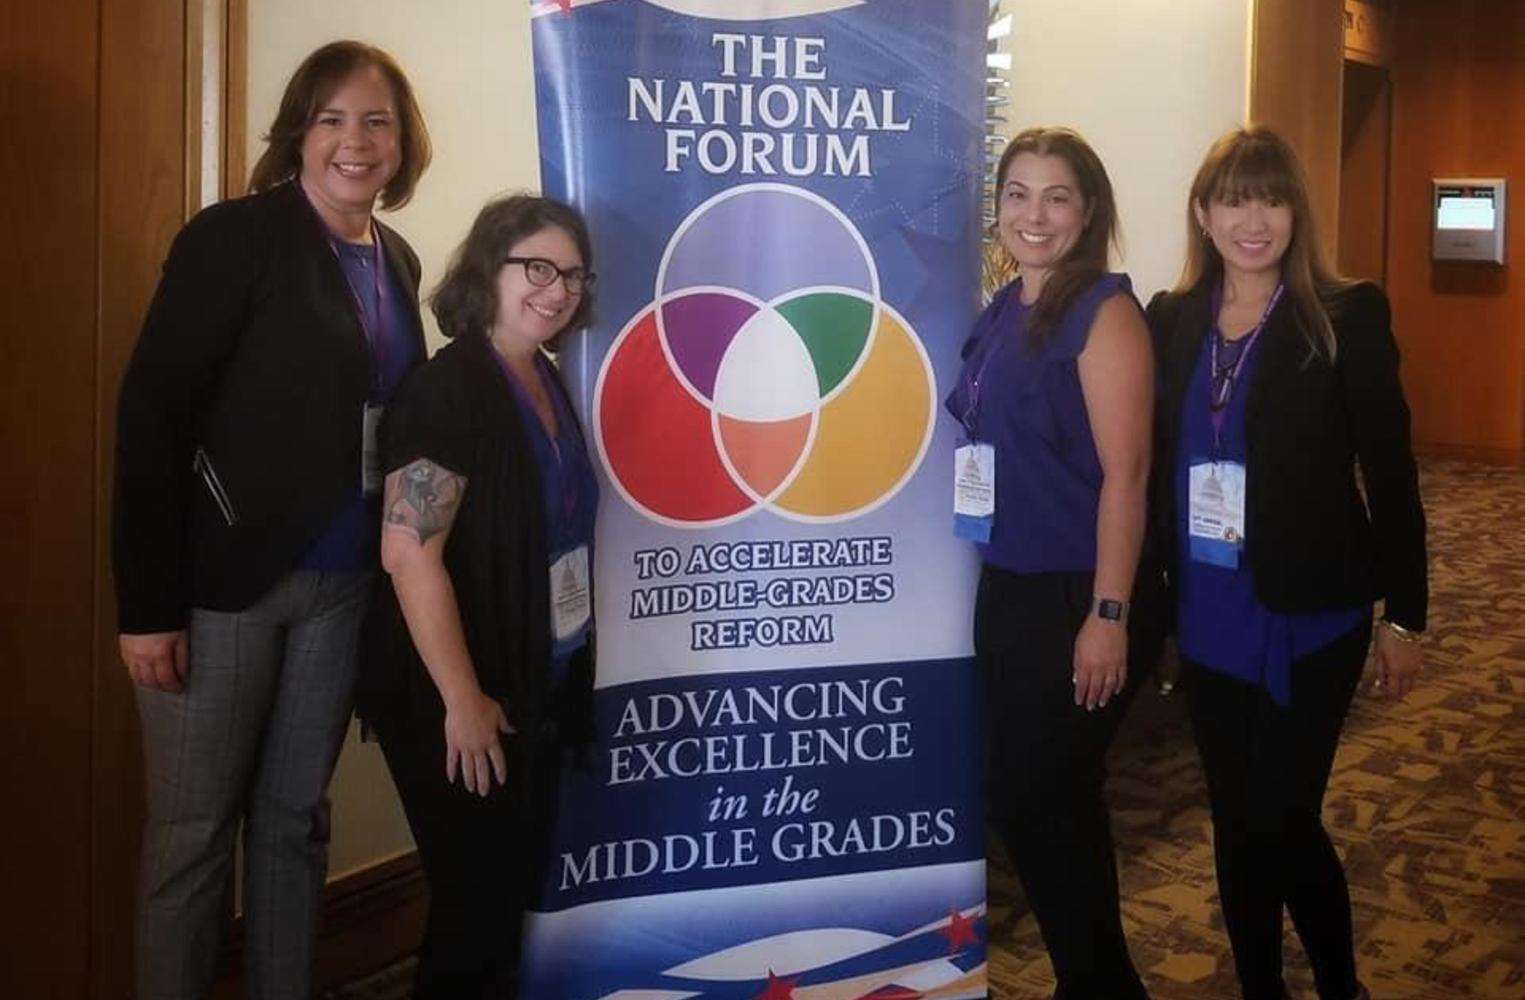 Ross administrators at the National Forum event